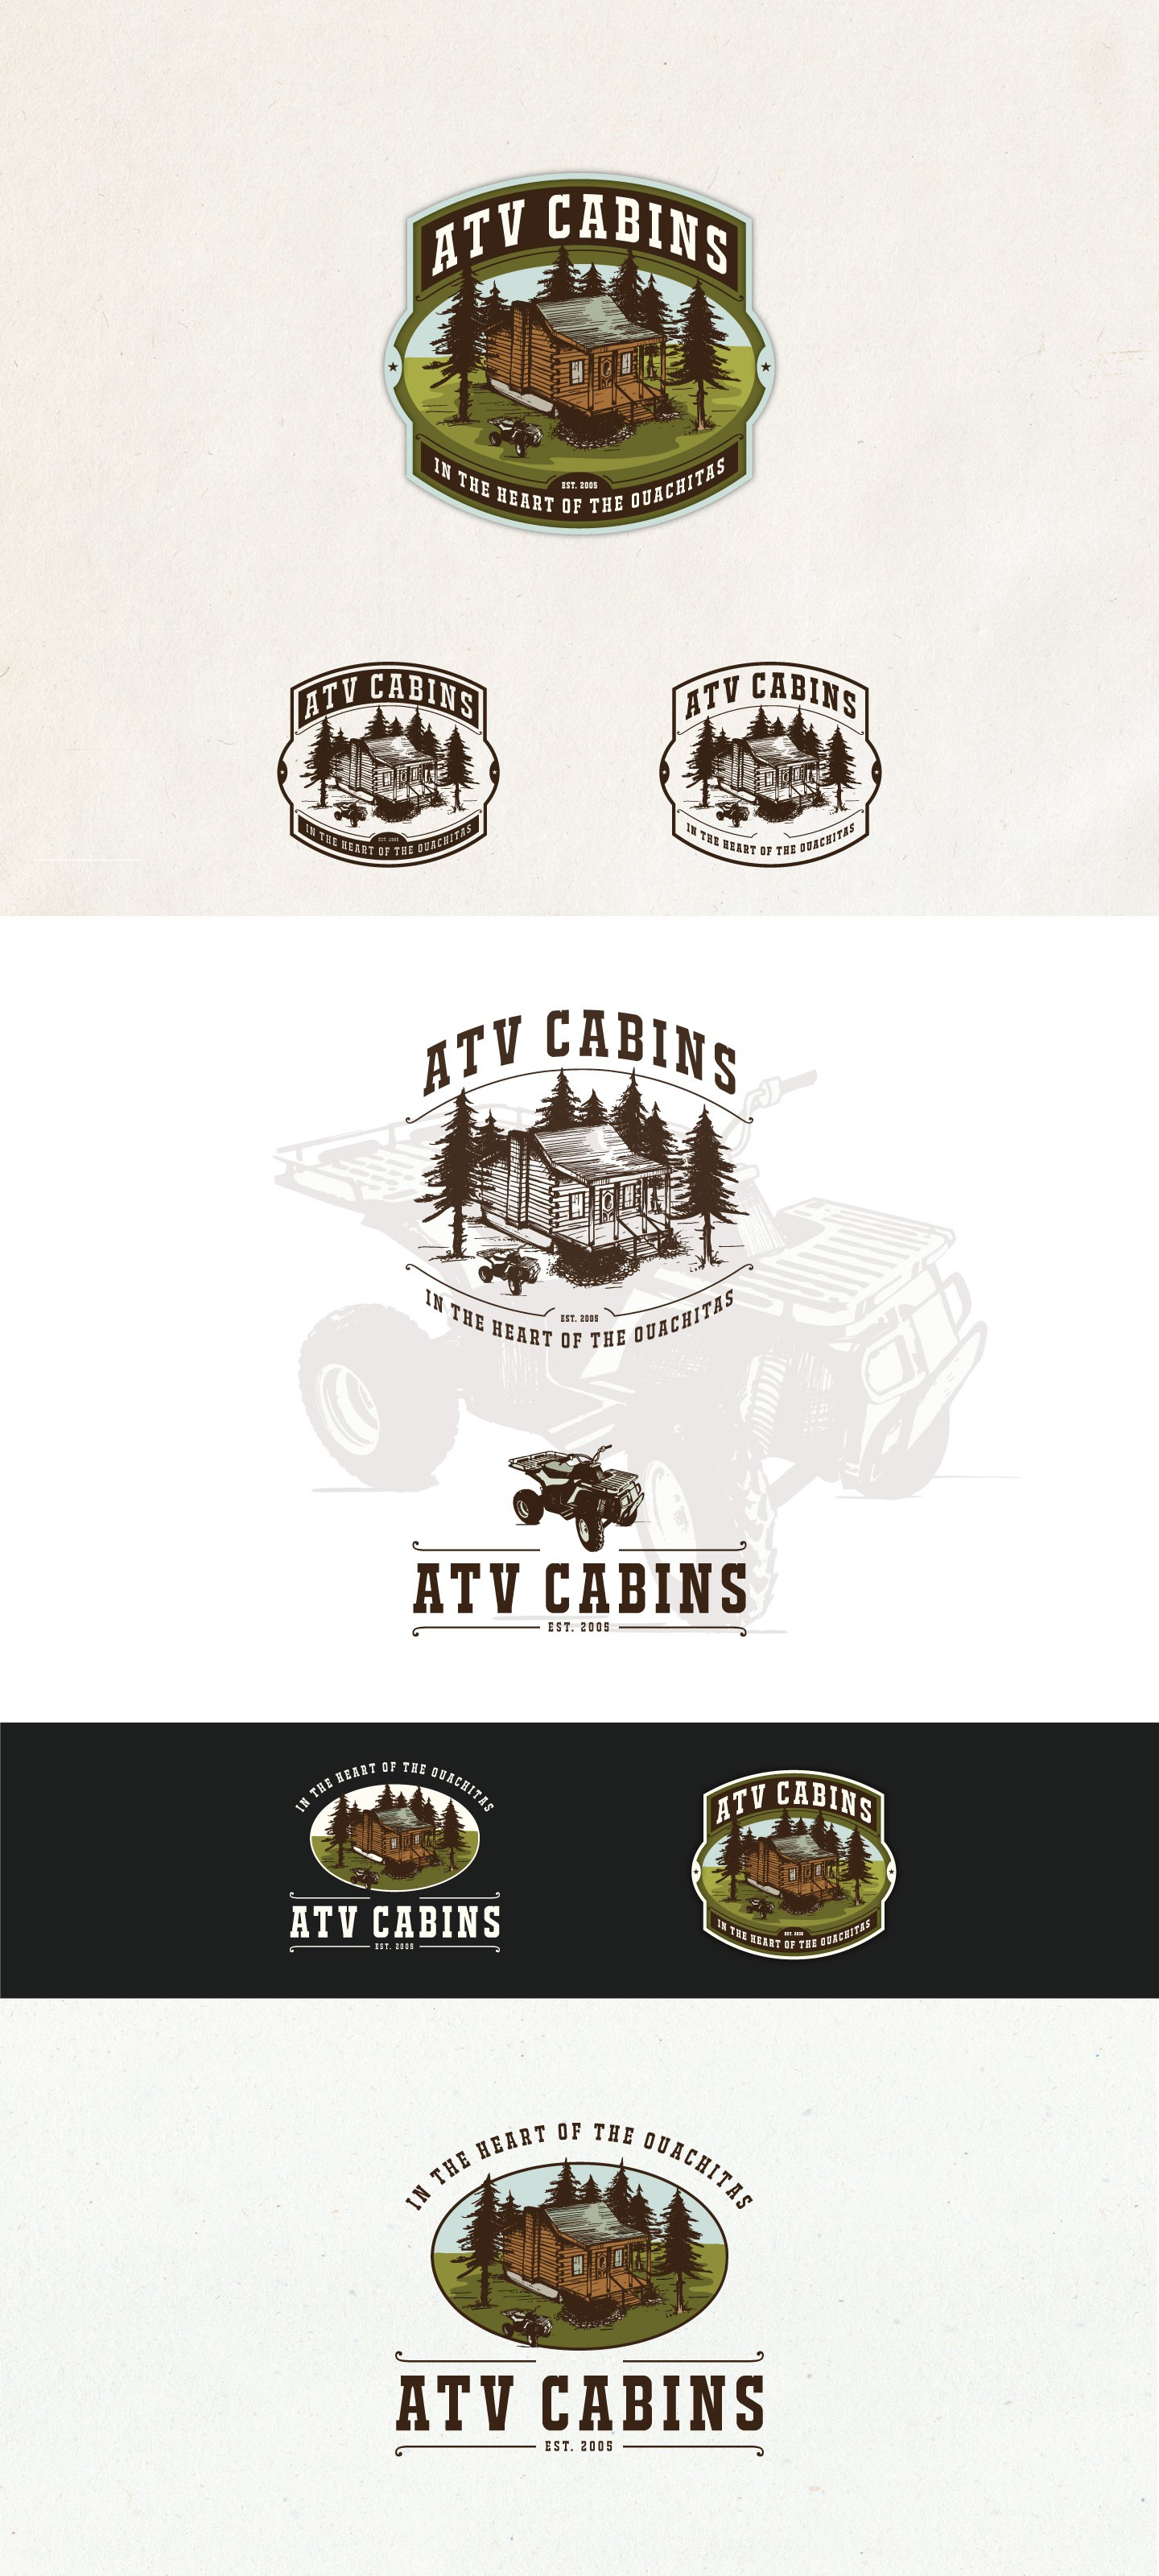 Create a log cabin rental logo with a vintage/antique feel incorporating ATVs